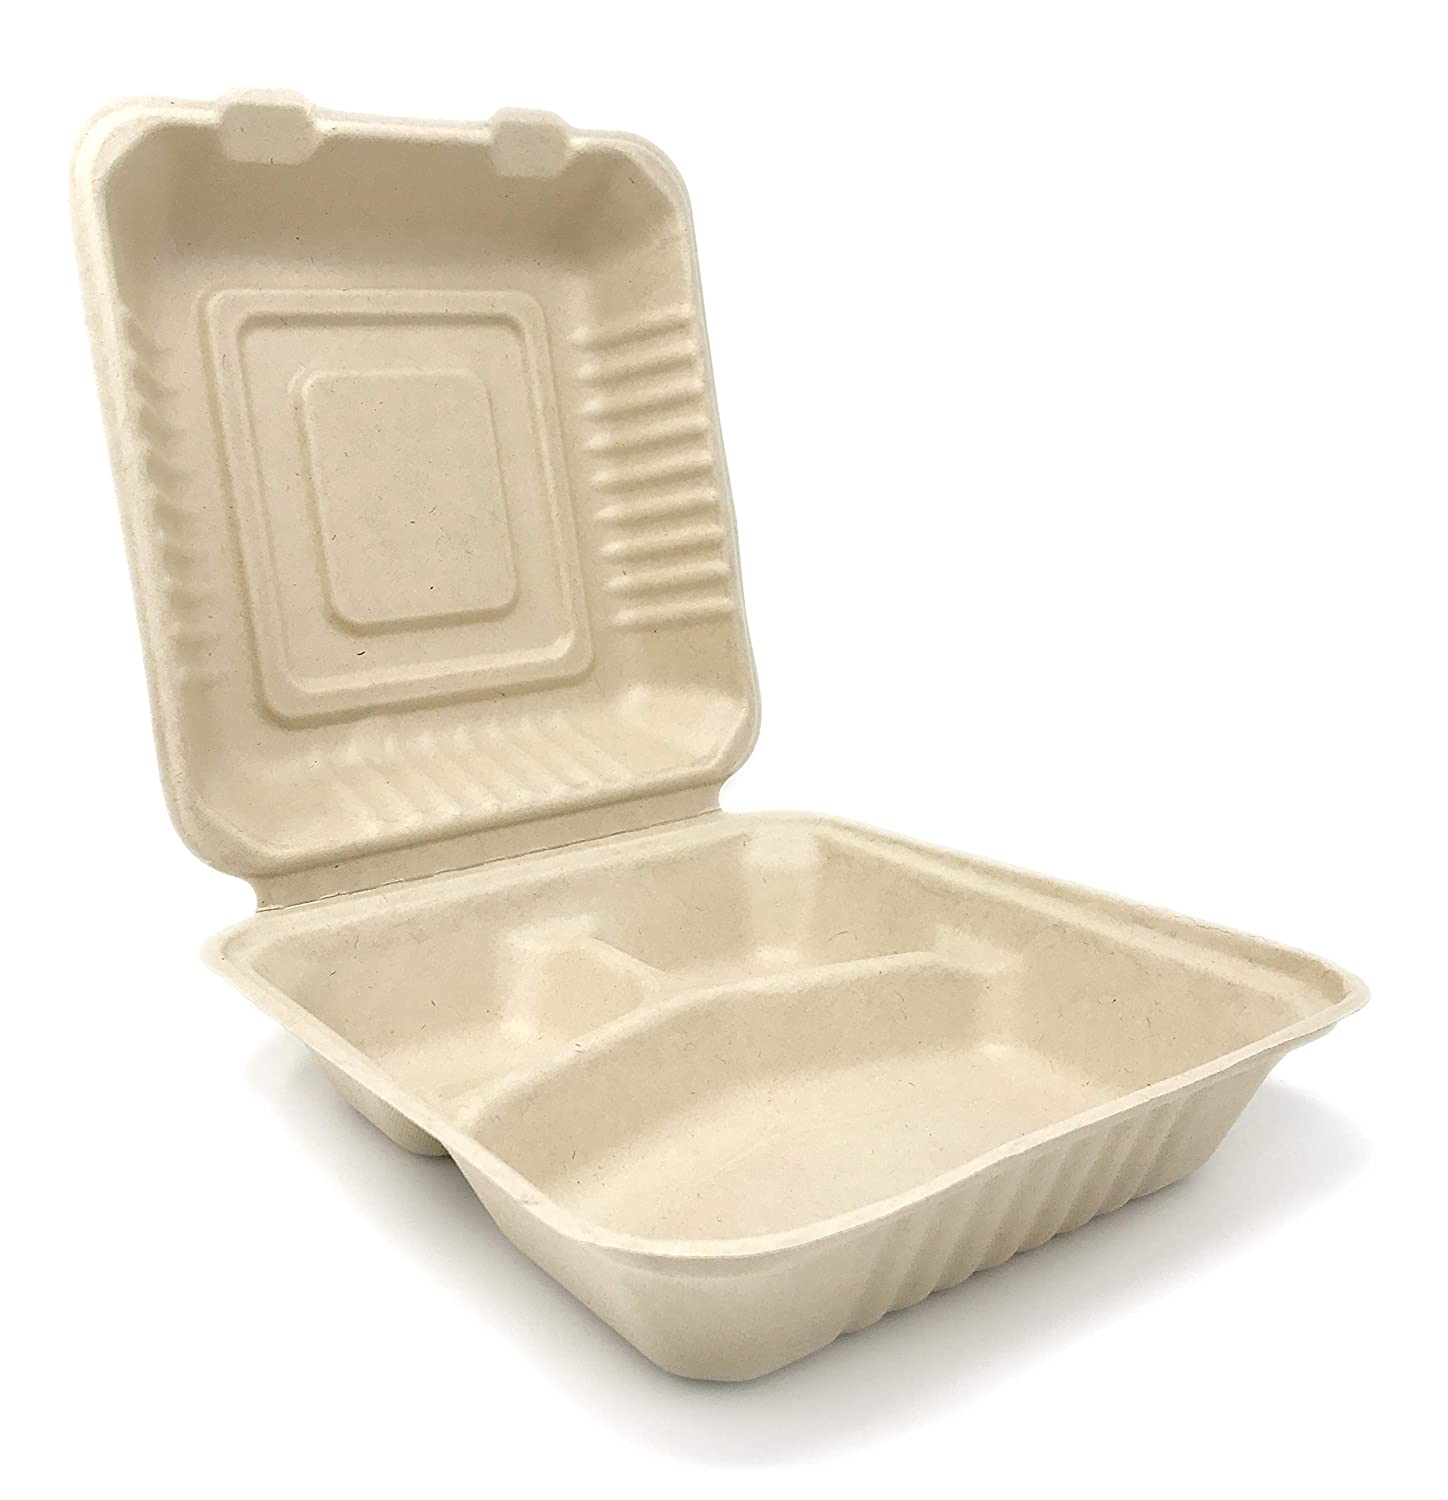 100% COMPOSTABLE 8x8 3 Compartment Take Out Food Container (50 Count) Made from Wheatgrass Bagasse, MR. Green Guys, Heavy Duty 8